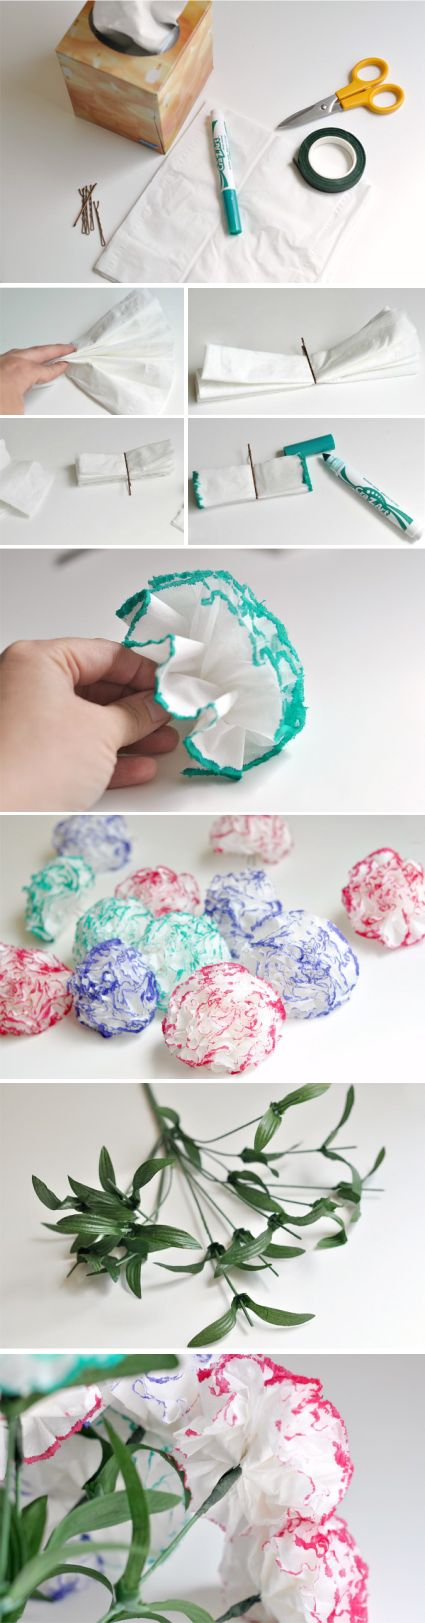 Tissue Flowers - so cute!!!!